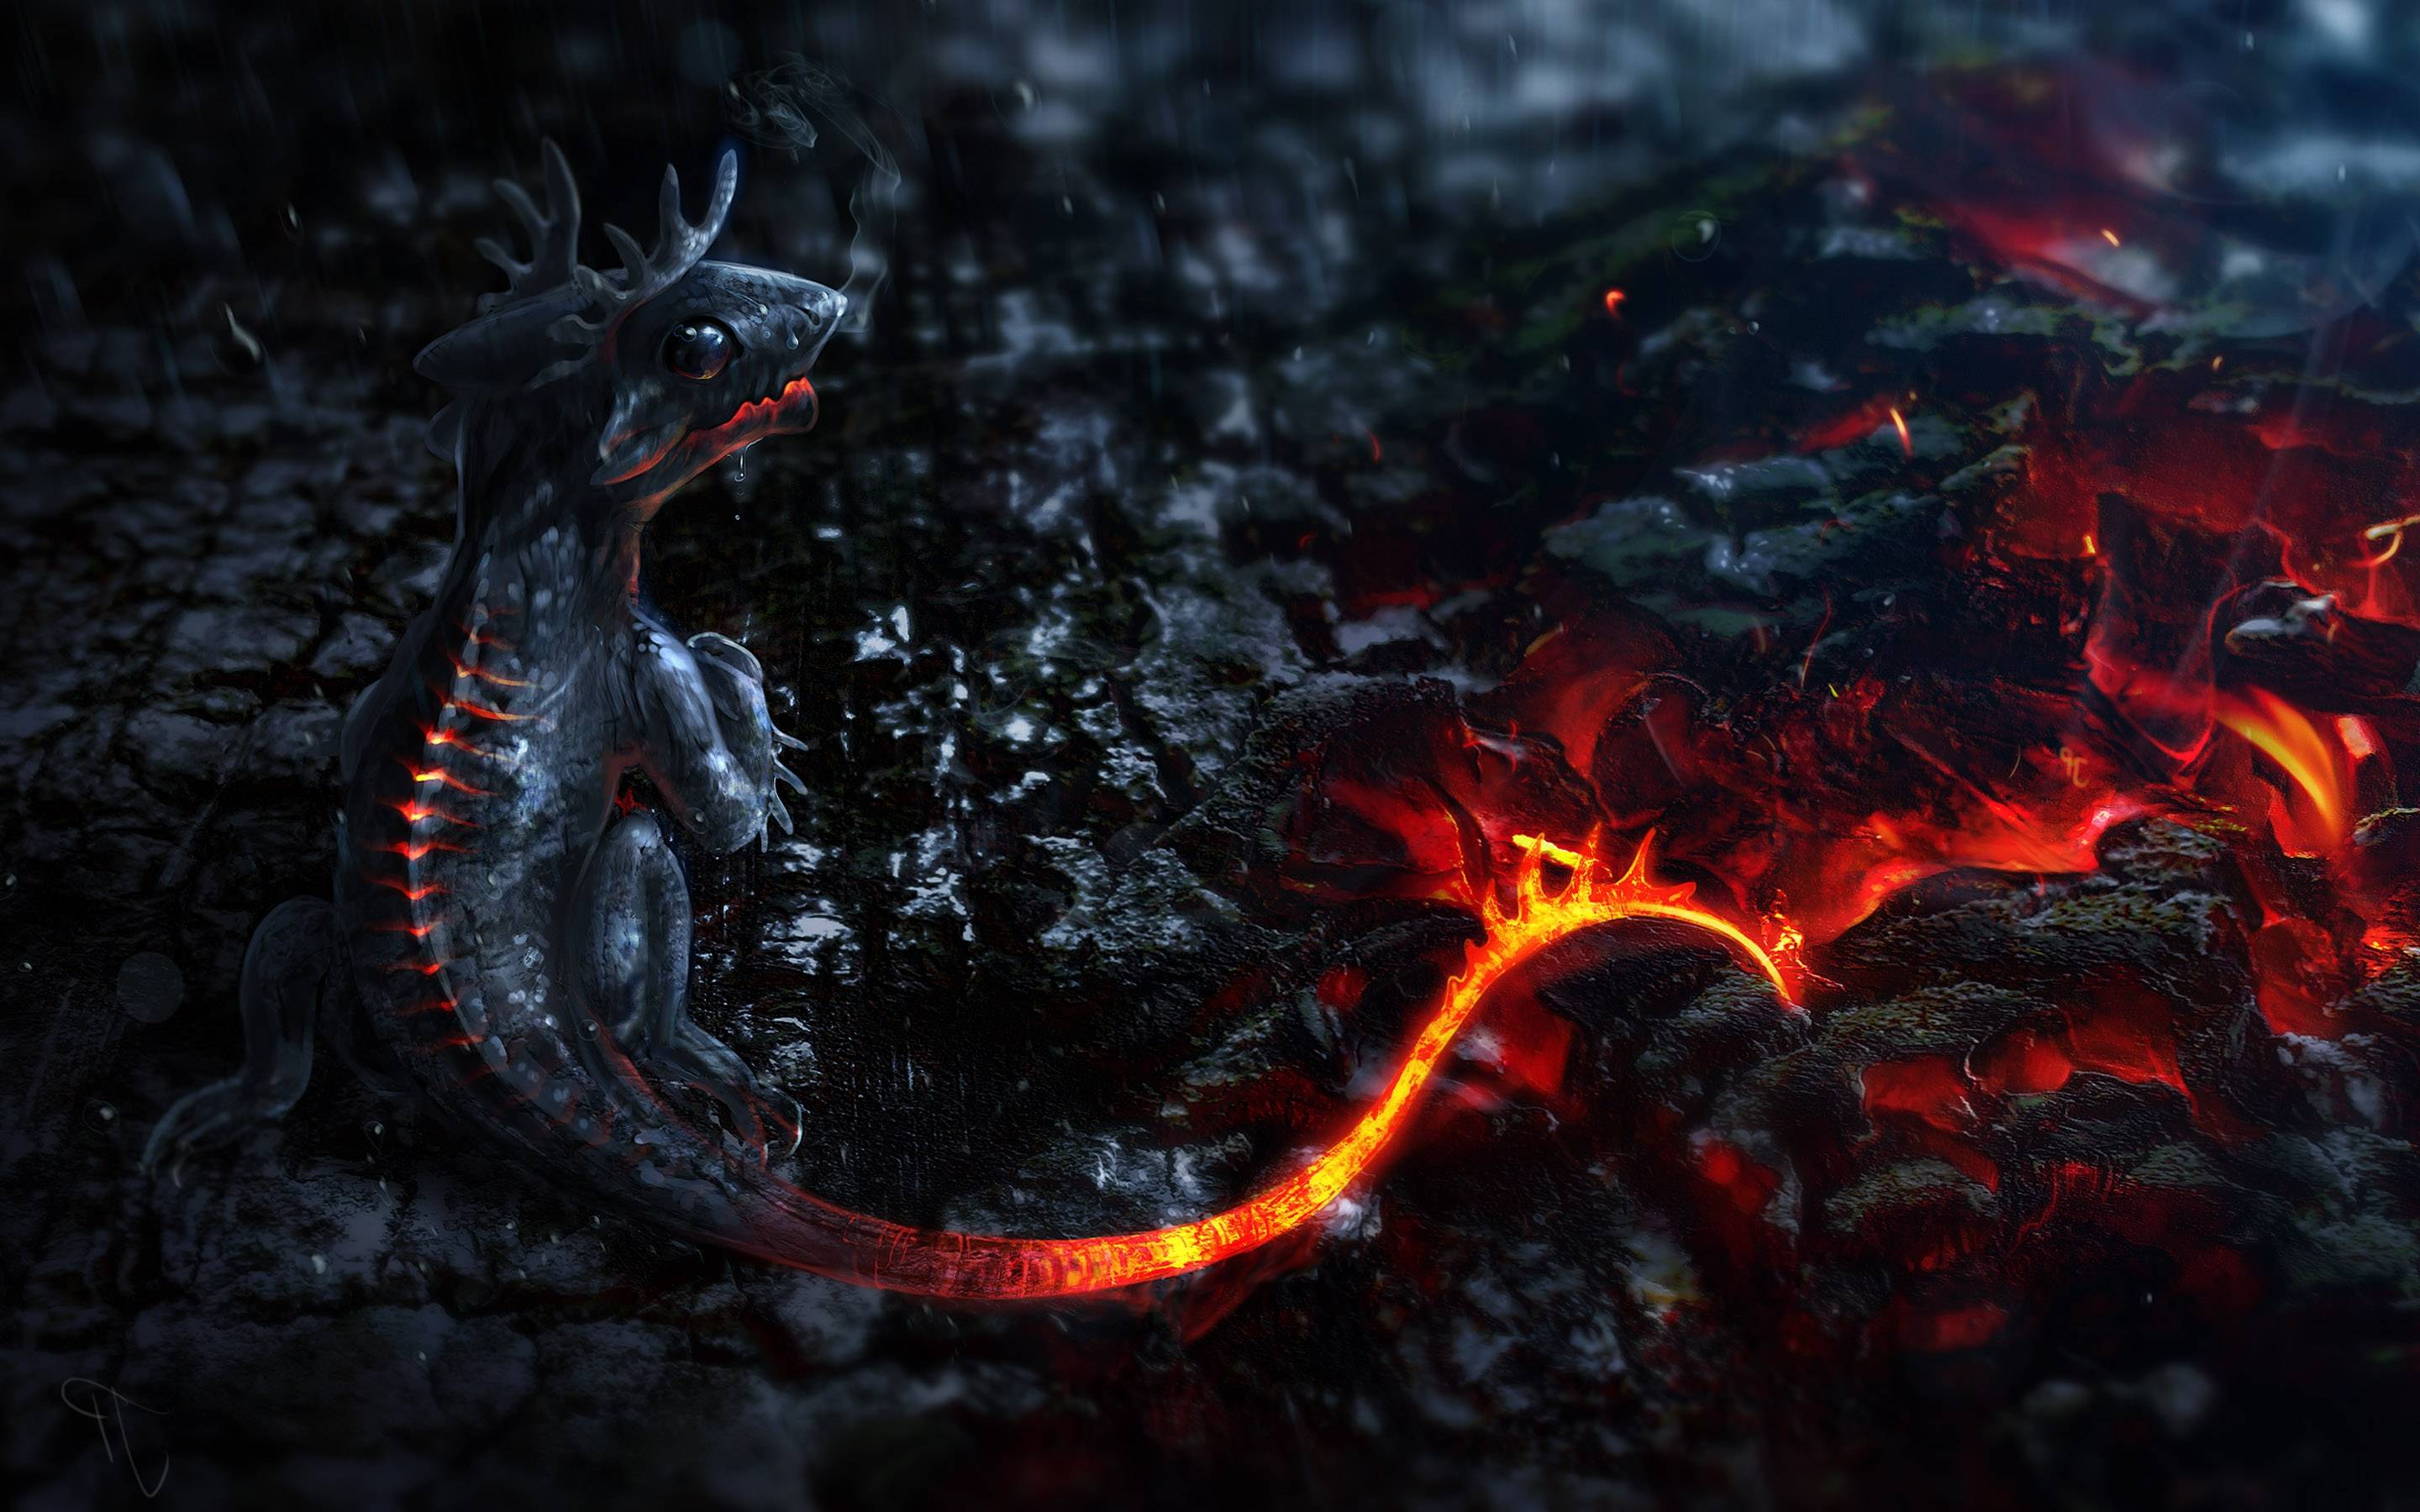 Wallpapers For > Awesome Fire Dragon Wallpapers